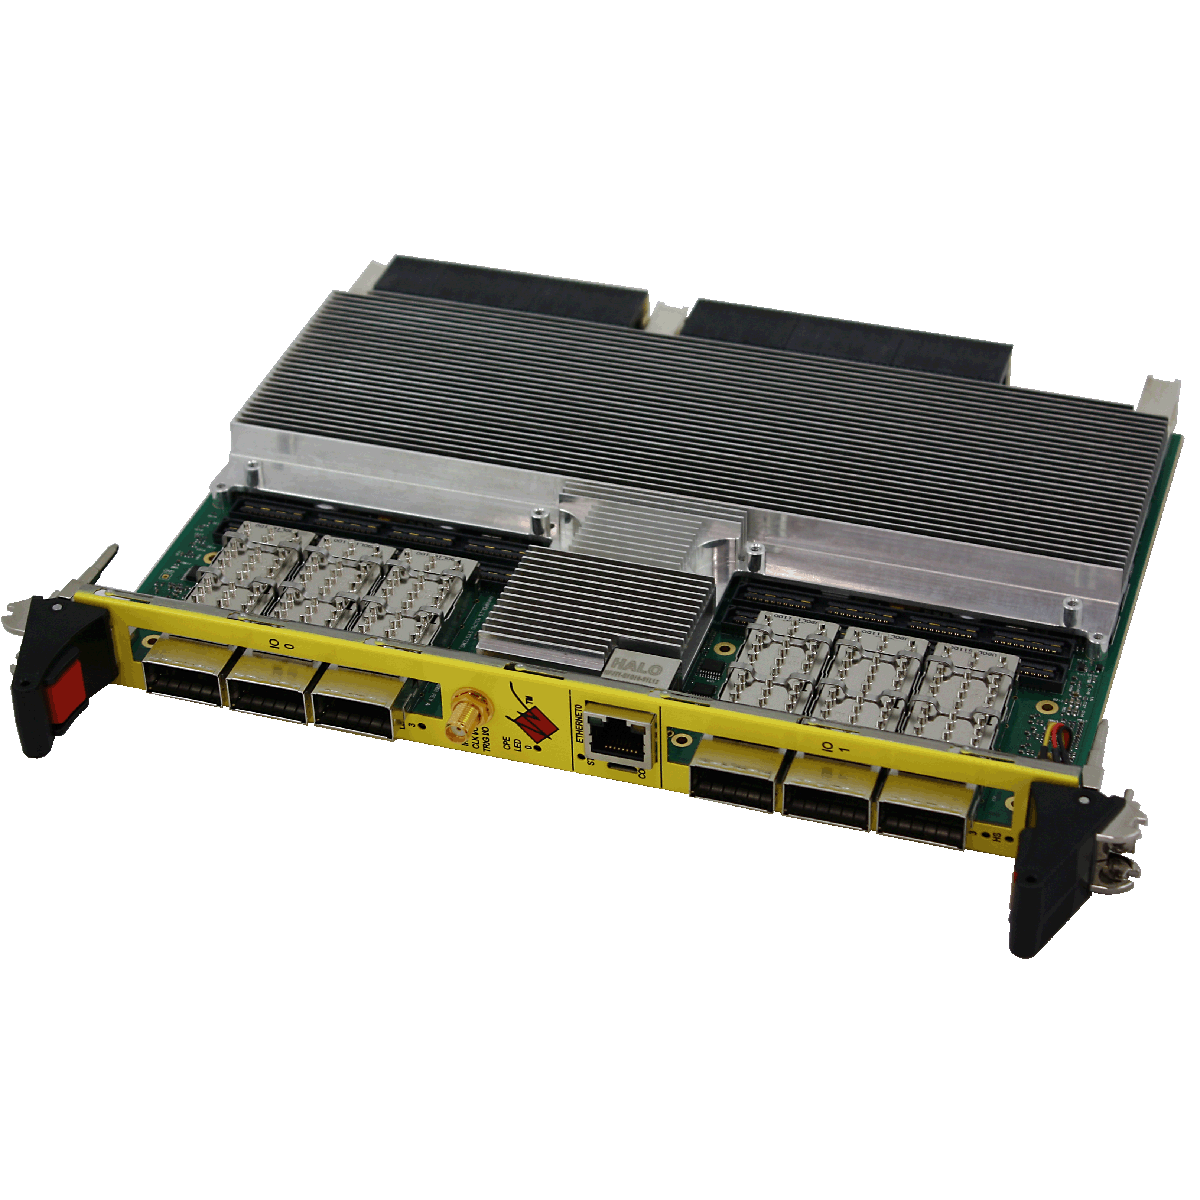 Rugged Xilinx Virtex 7 OpenVPX FPGA Processing Board